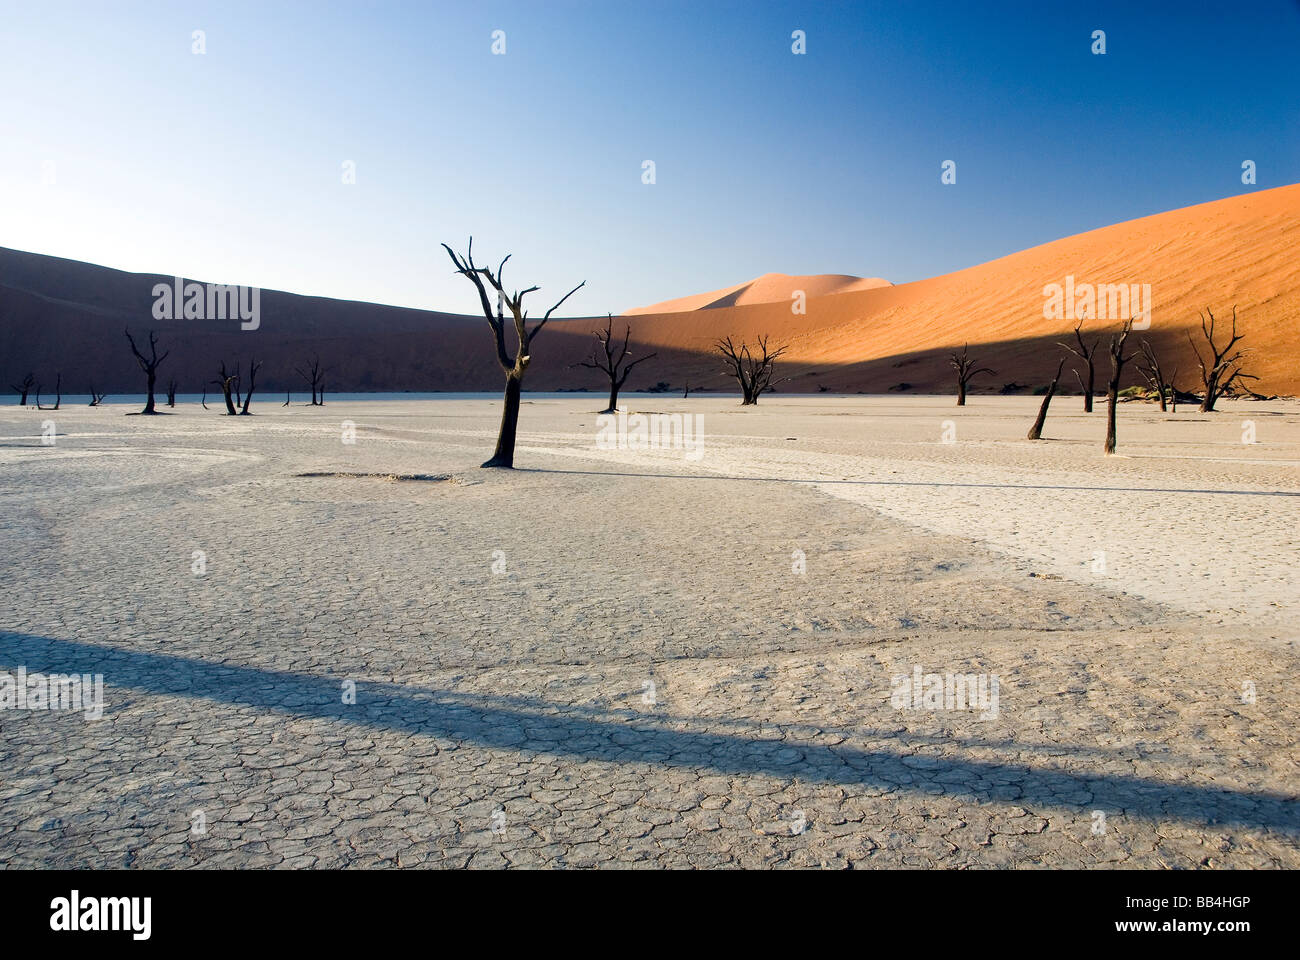 Deadvlei, NAMBIA - JANUARY (3): The sun rises over Deadvlei, a clay pan known for its thousand year old preserved - Stock Image